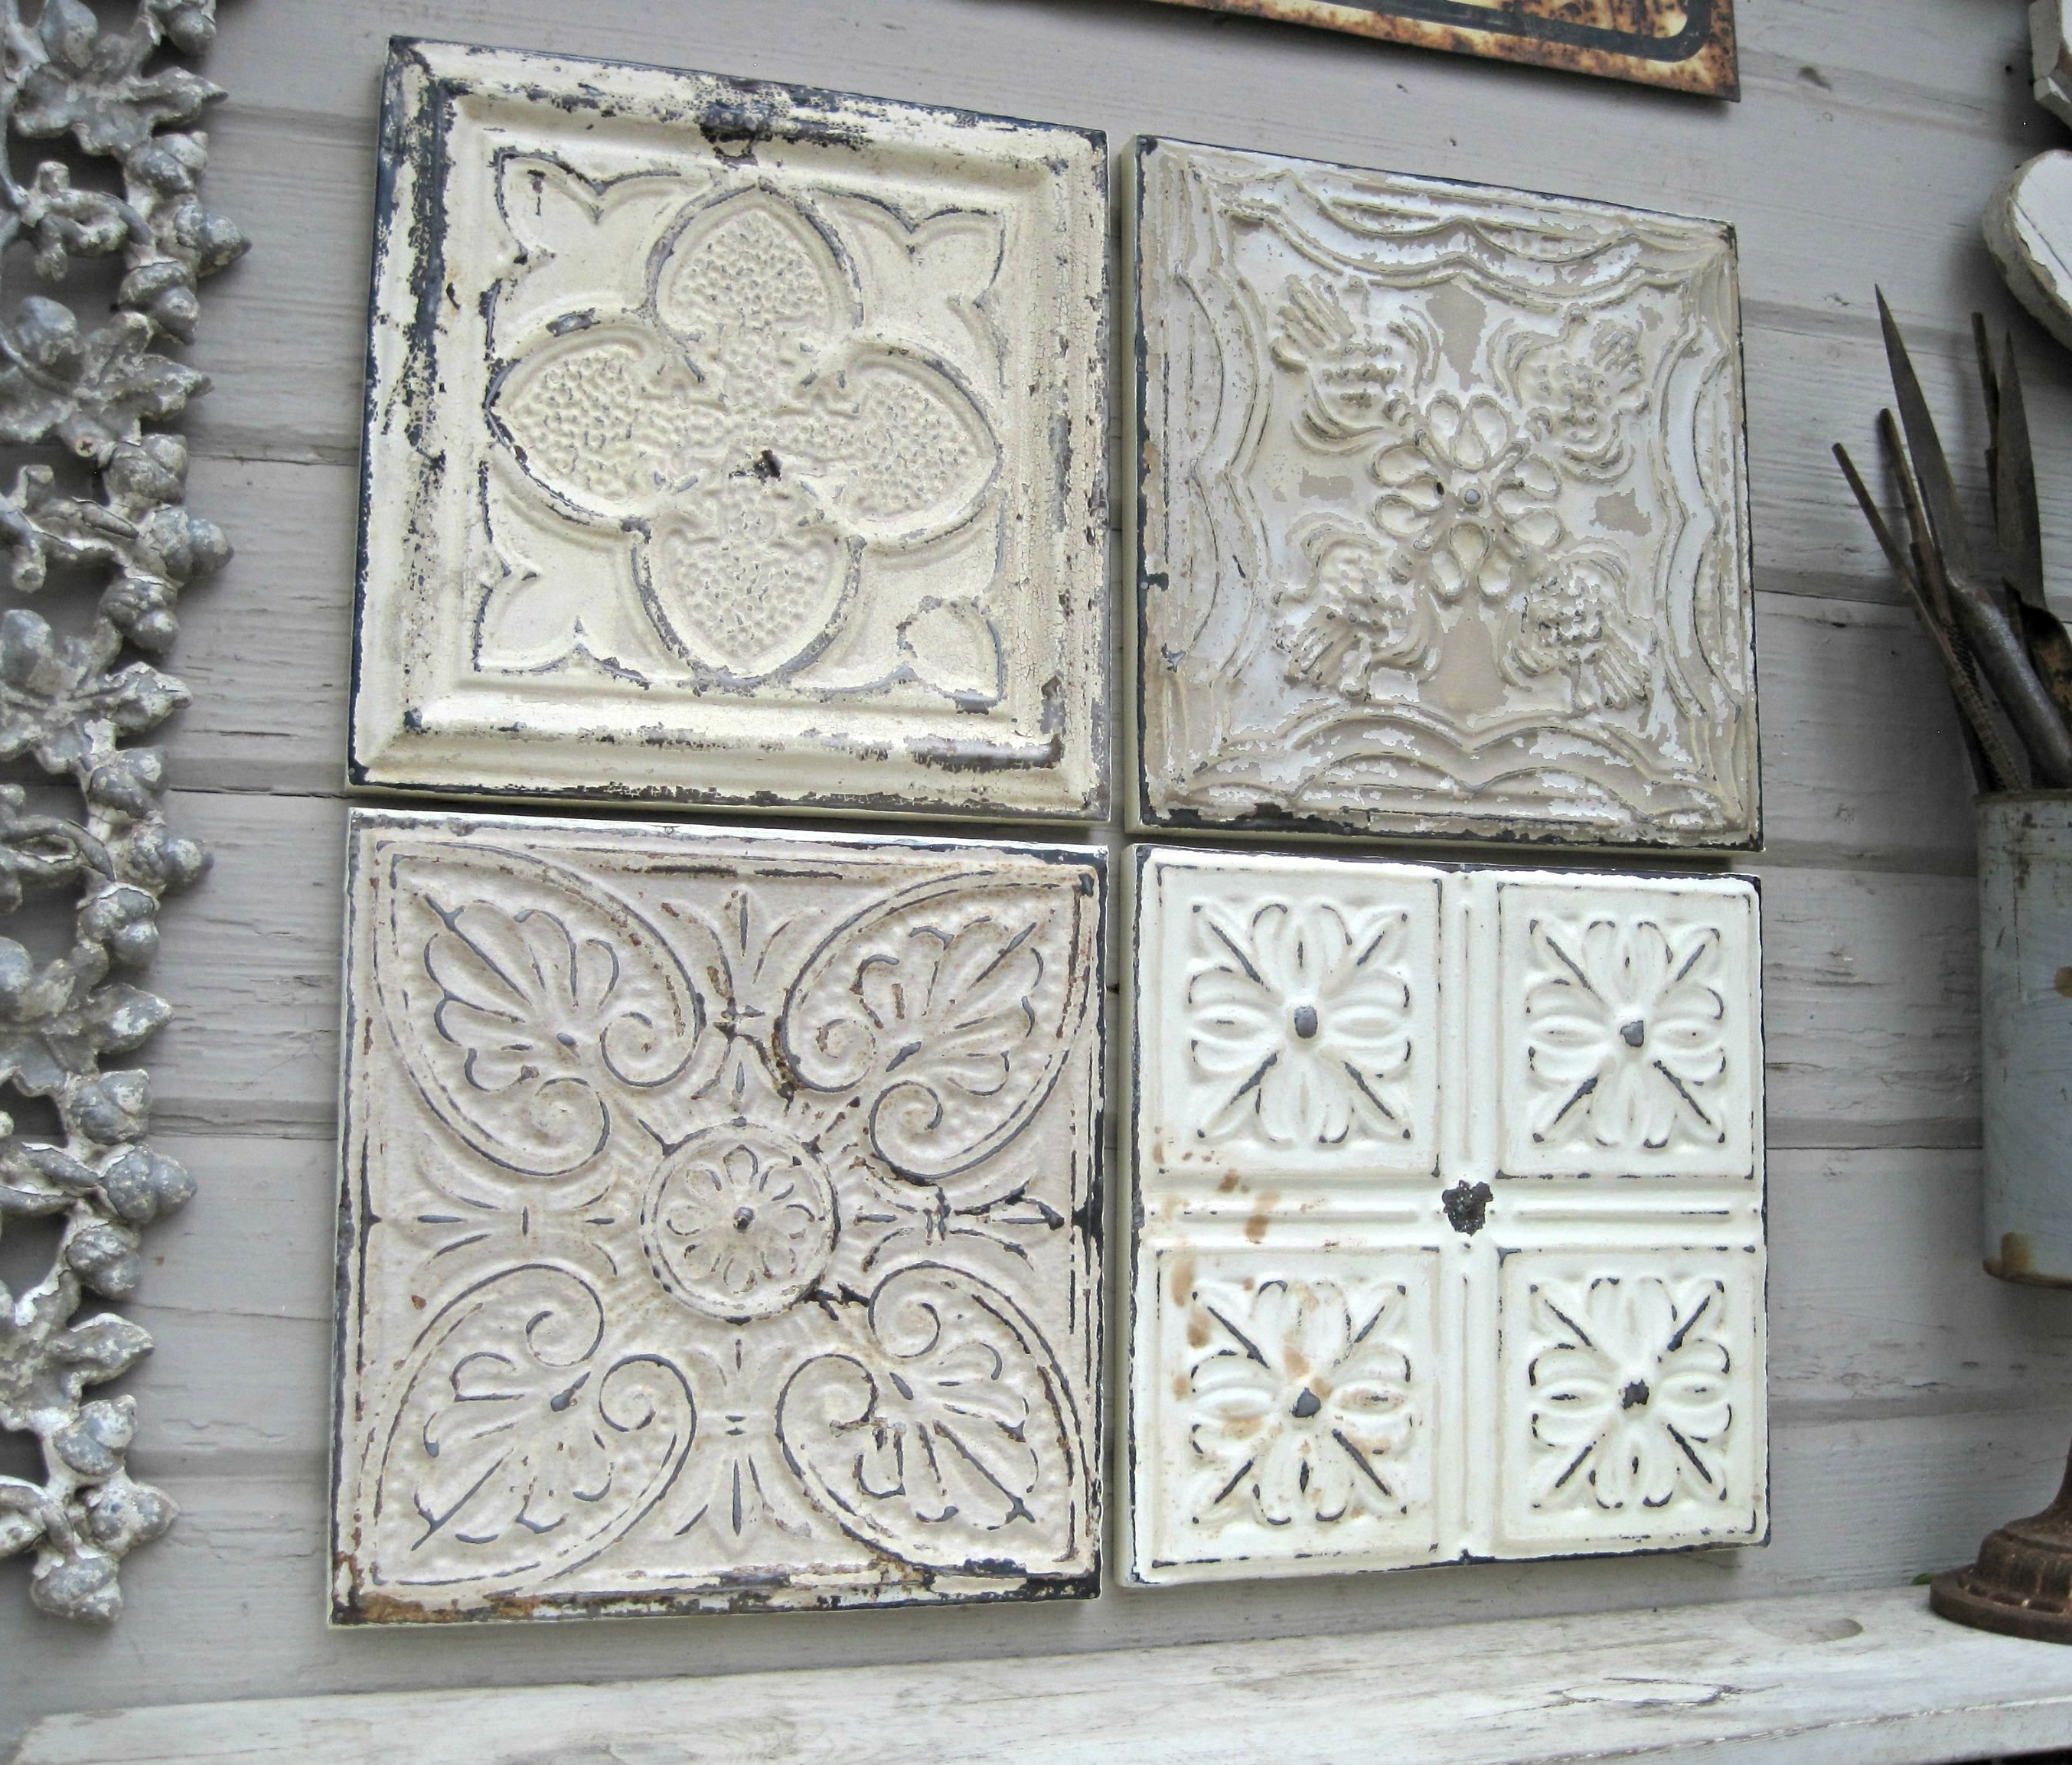 Trendy Idea Architectural Wall Decor Or Decoration And Libson With Regard To Most Recently Released Architectural Wall Accents (View 14 of 15)